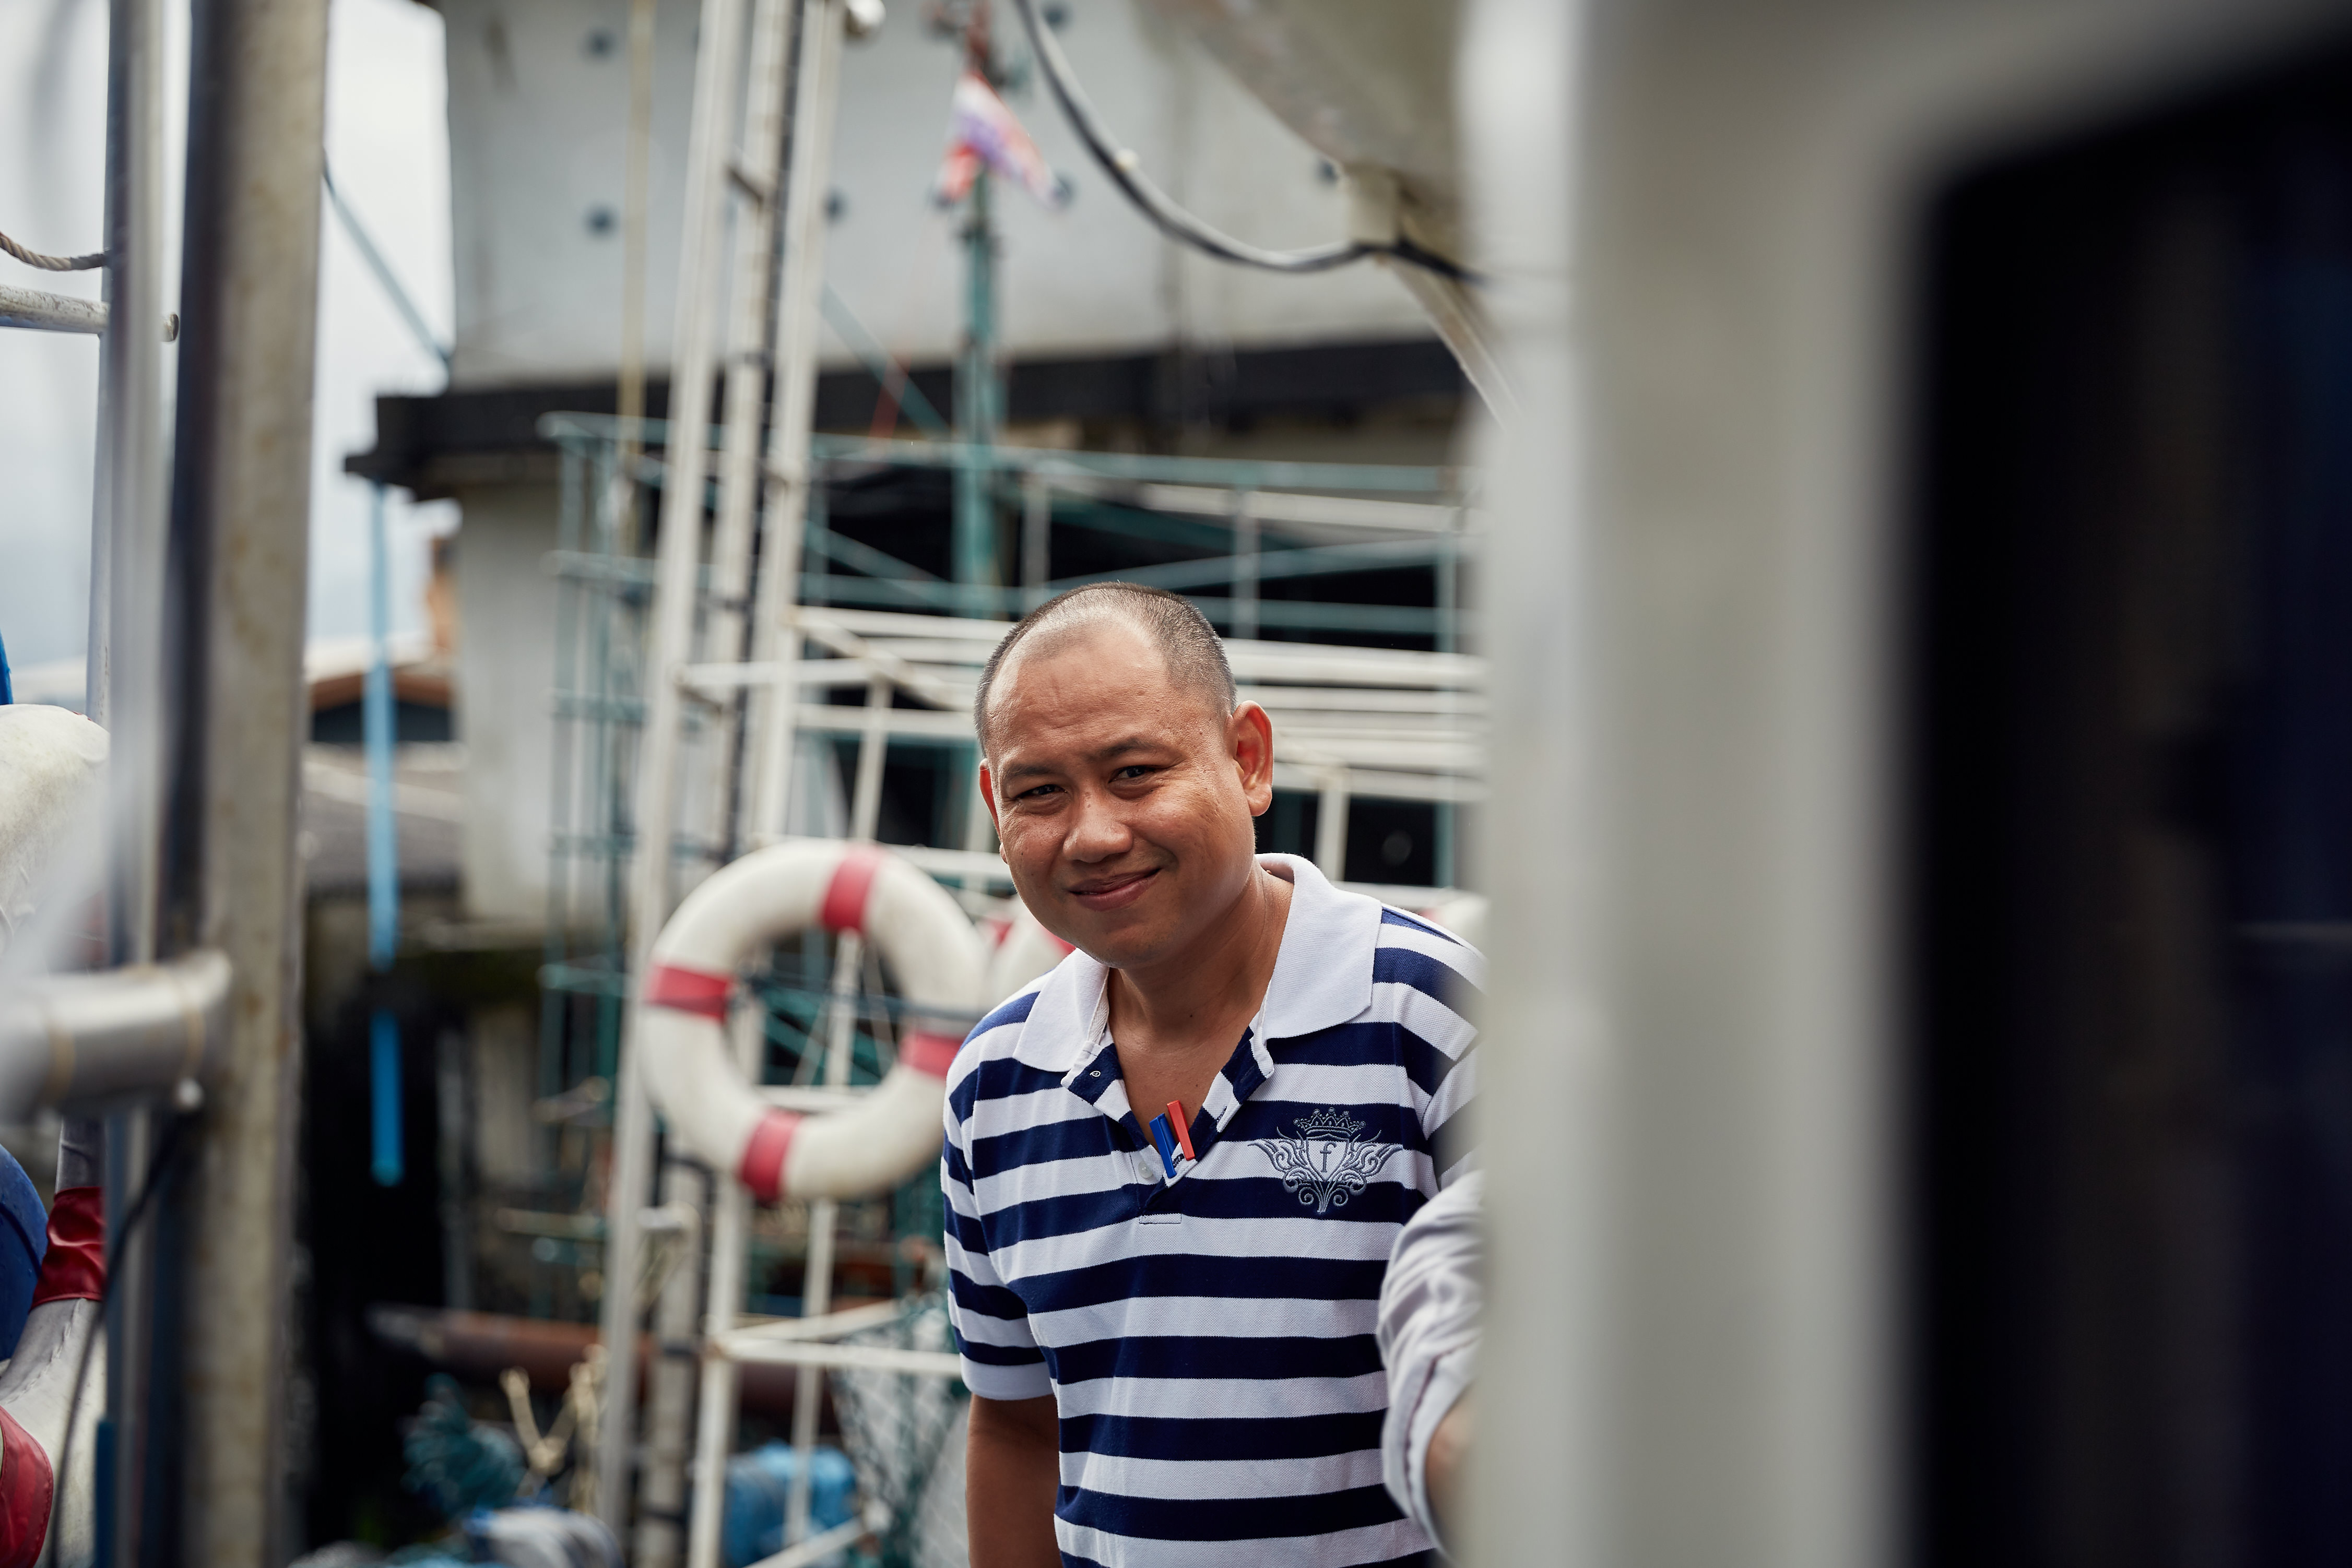 A man smiling onboard a fishing vessel in the south of Thailand. Photo credit: Thai Union